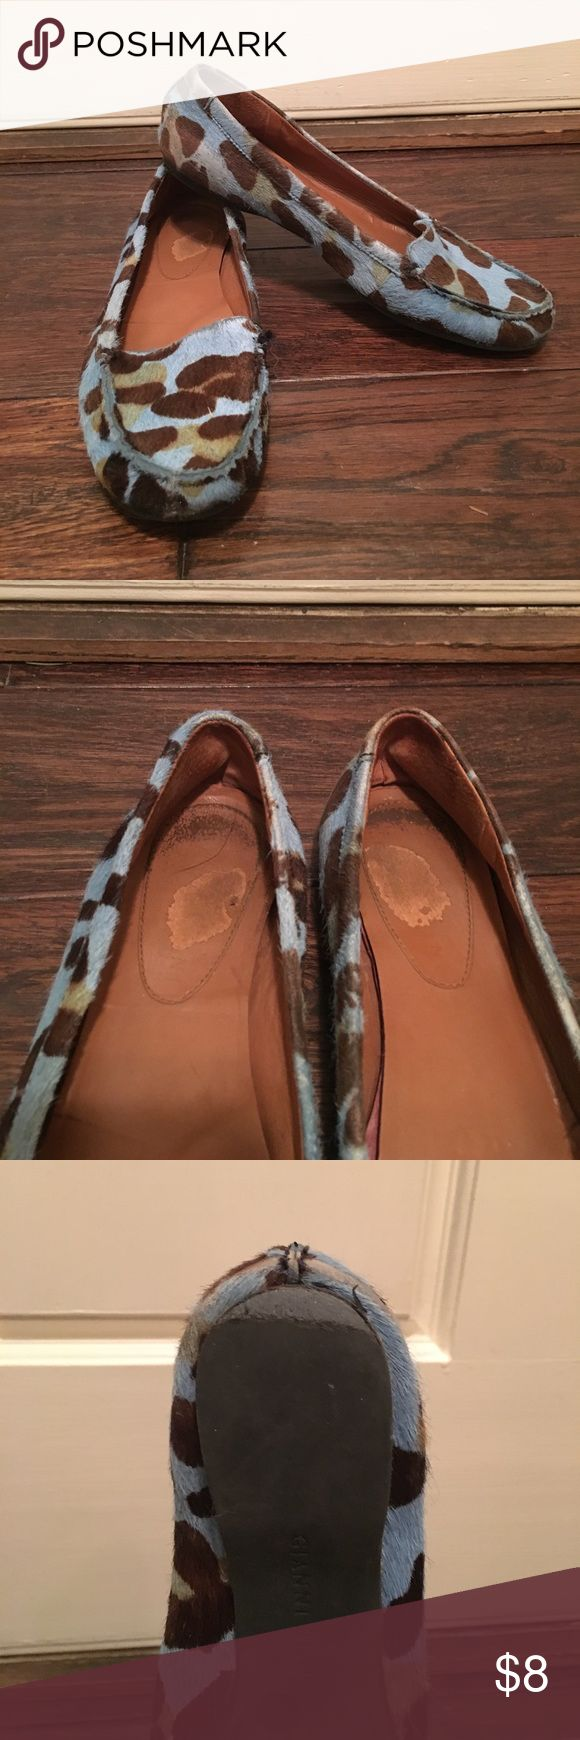 Blue leopard print loafers Calf-hair leopard print loafers. Worn in the heel. Gianni Bini Shoes Flats & Loafers